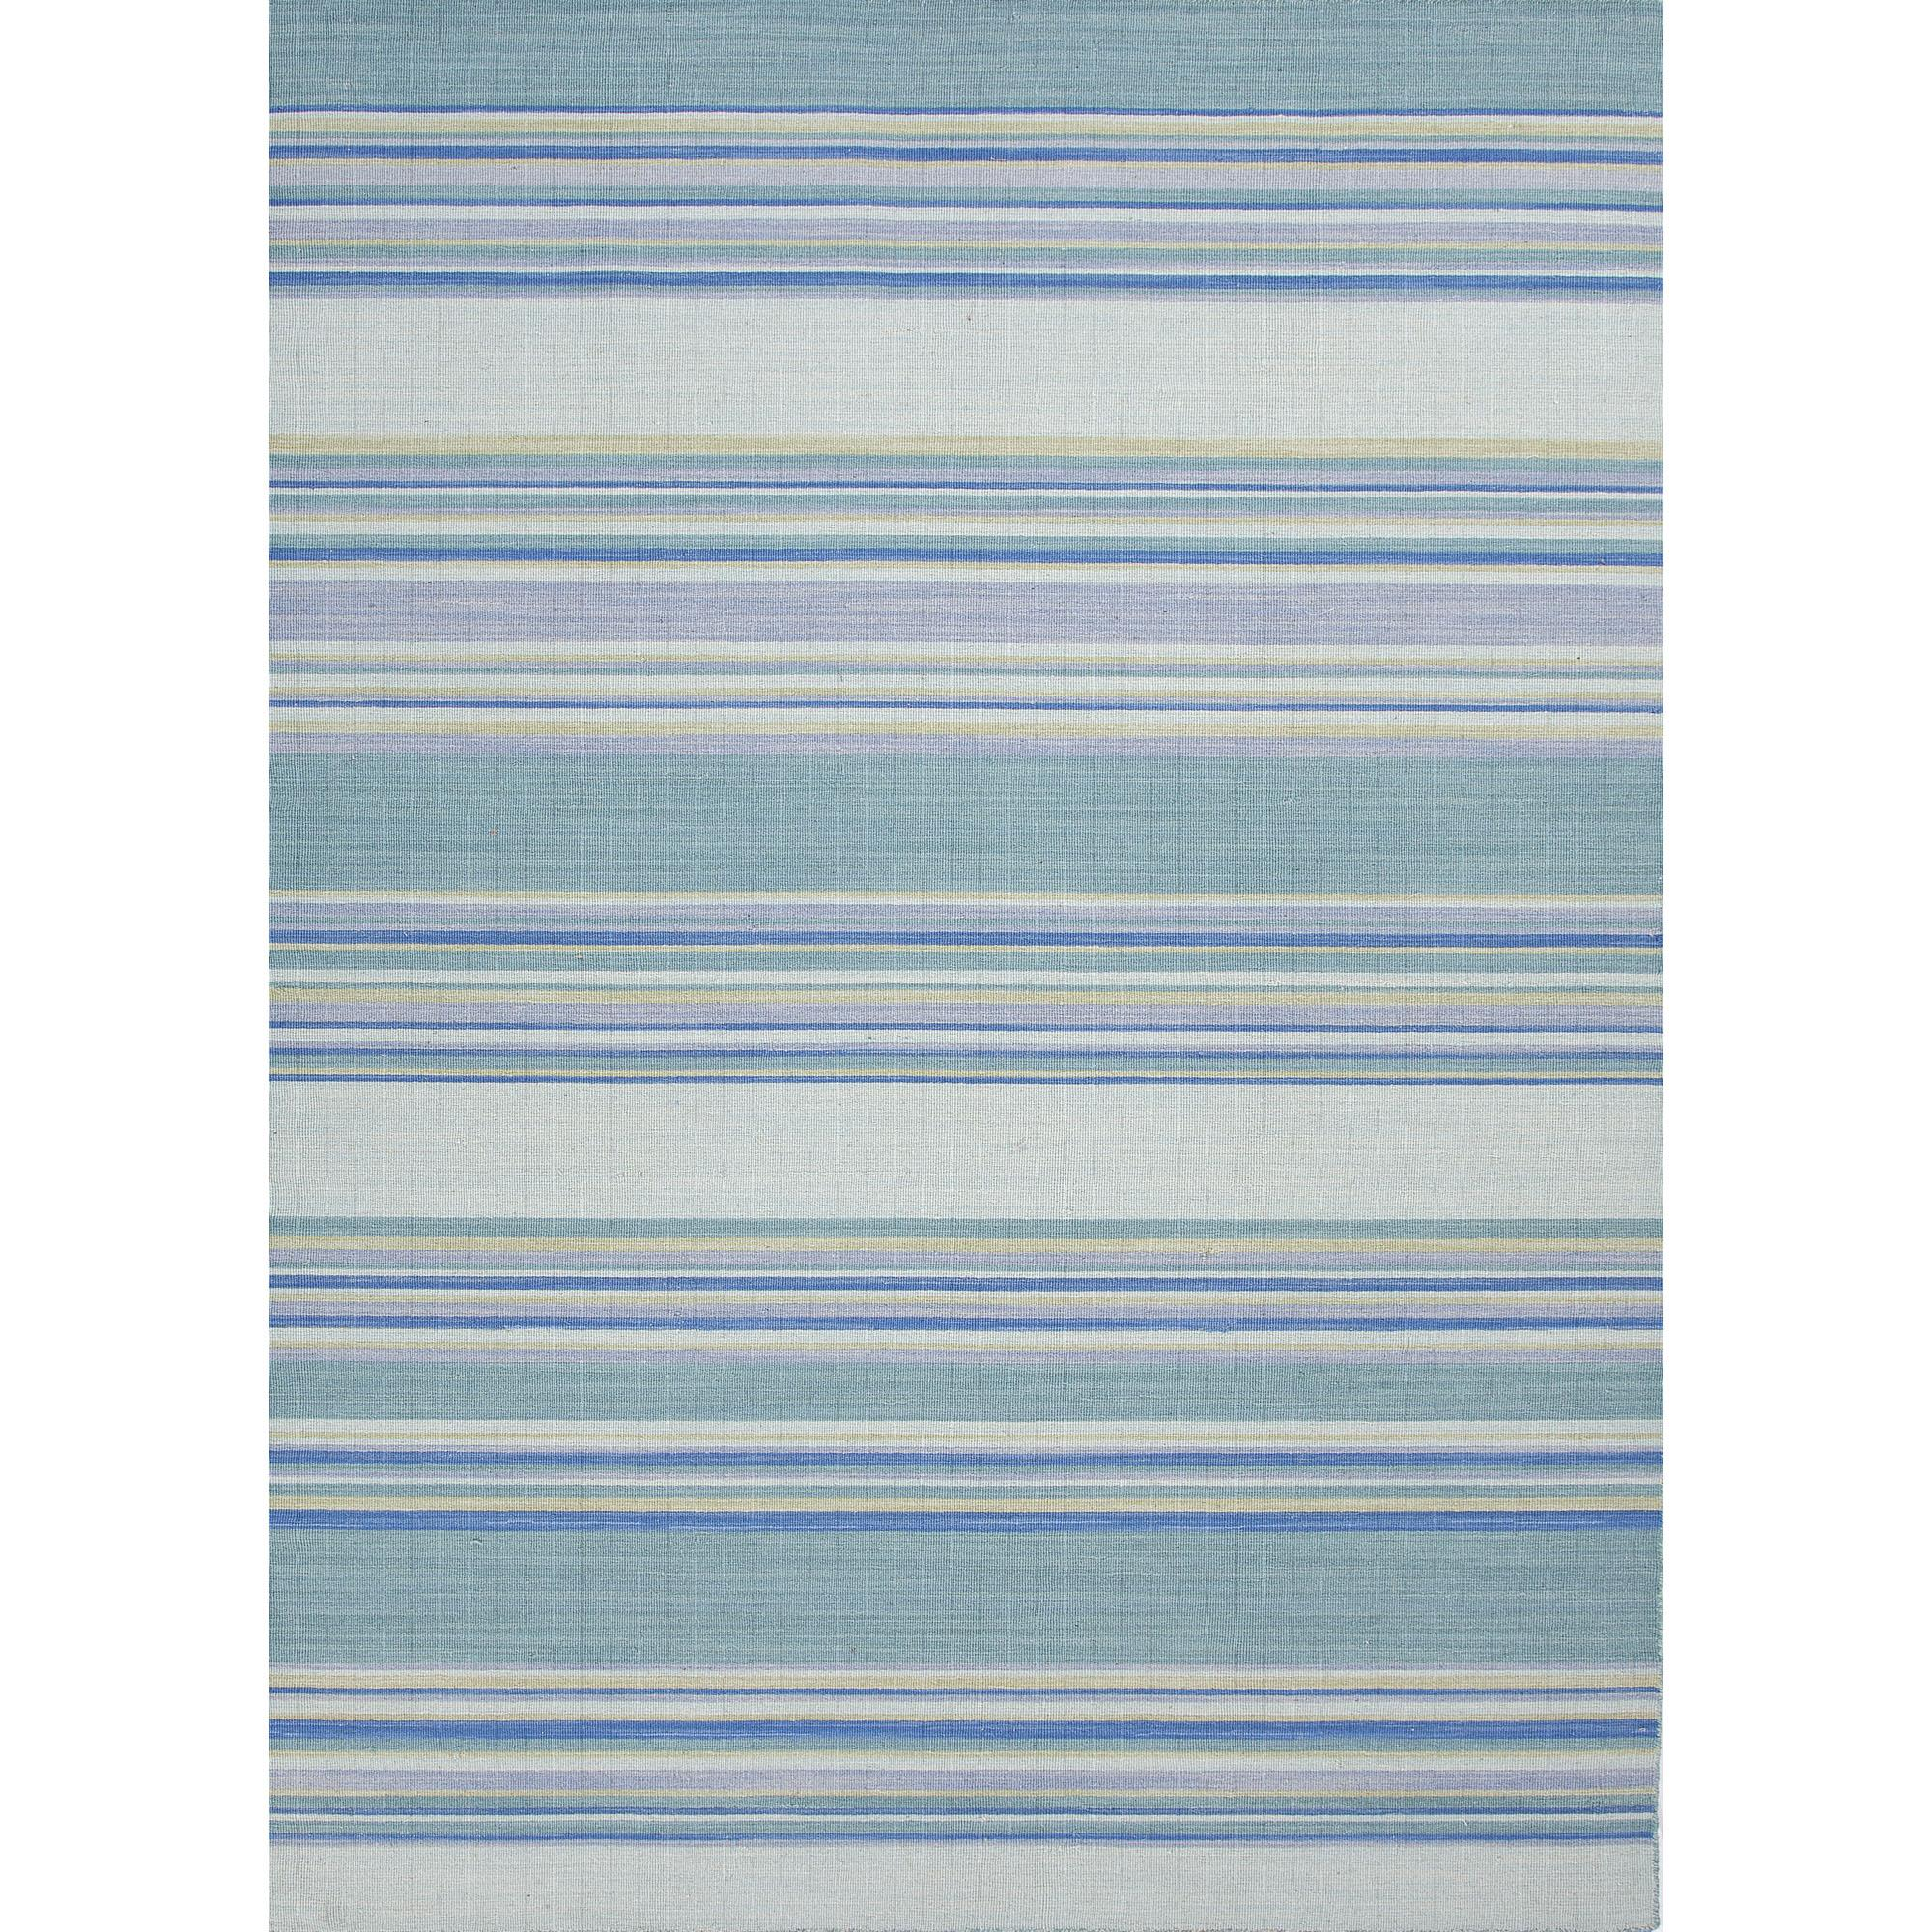 JAIPUR Rugs Coastal Shores 10 x 14 Rug - Item Number: RUG122441